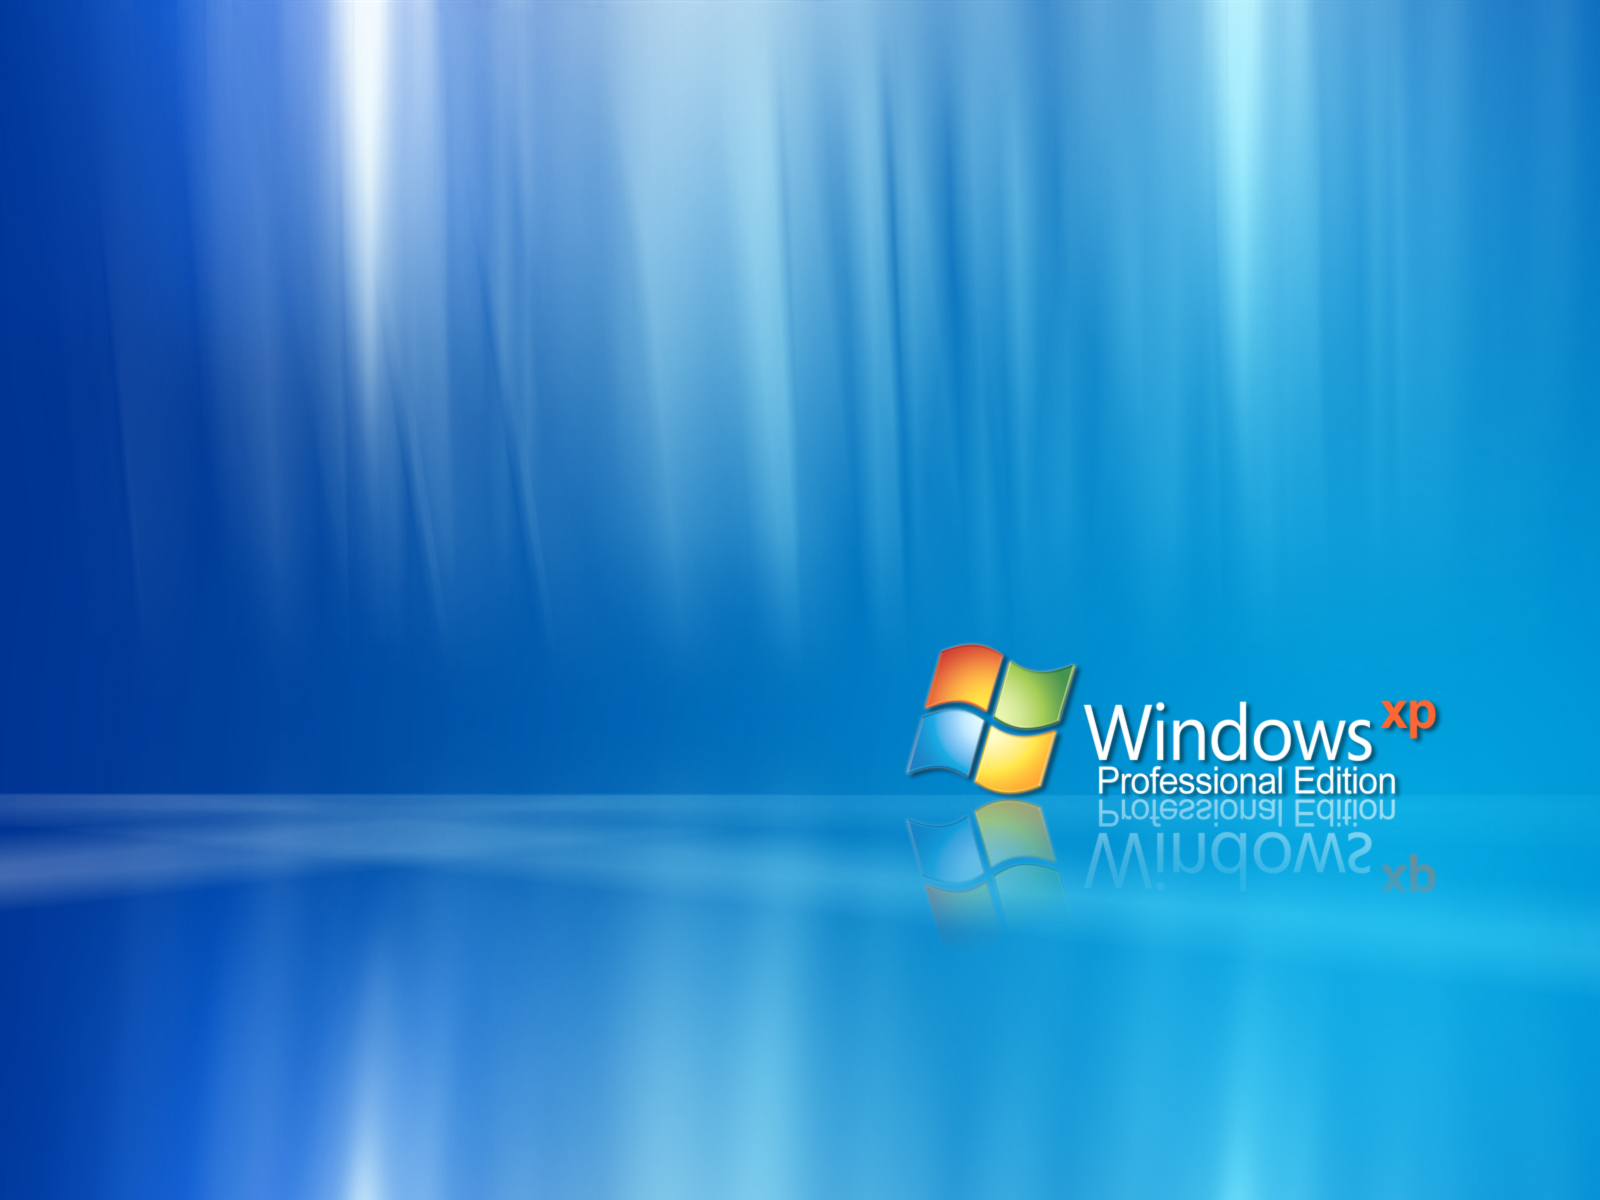 windows xp hd wallpapers wallpapers